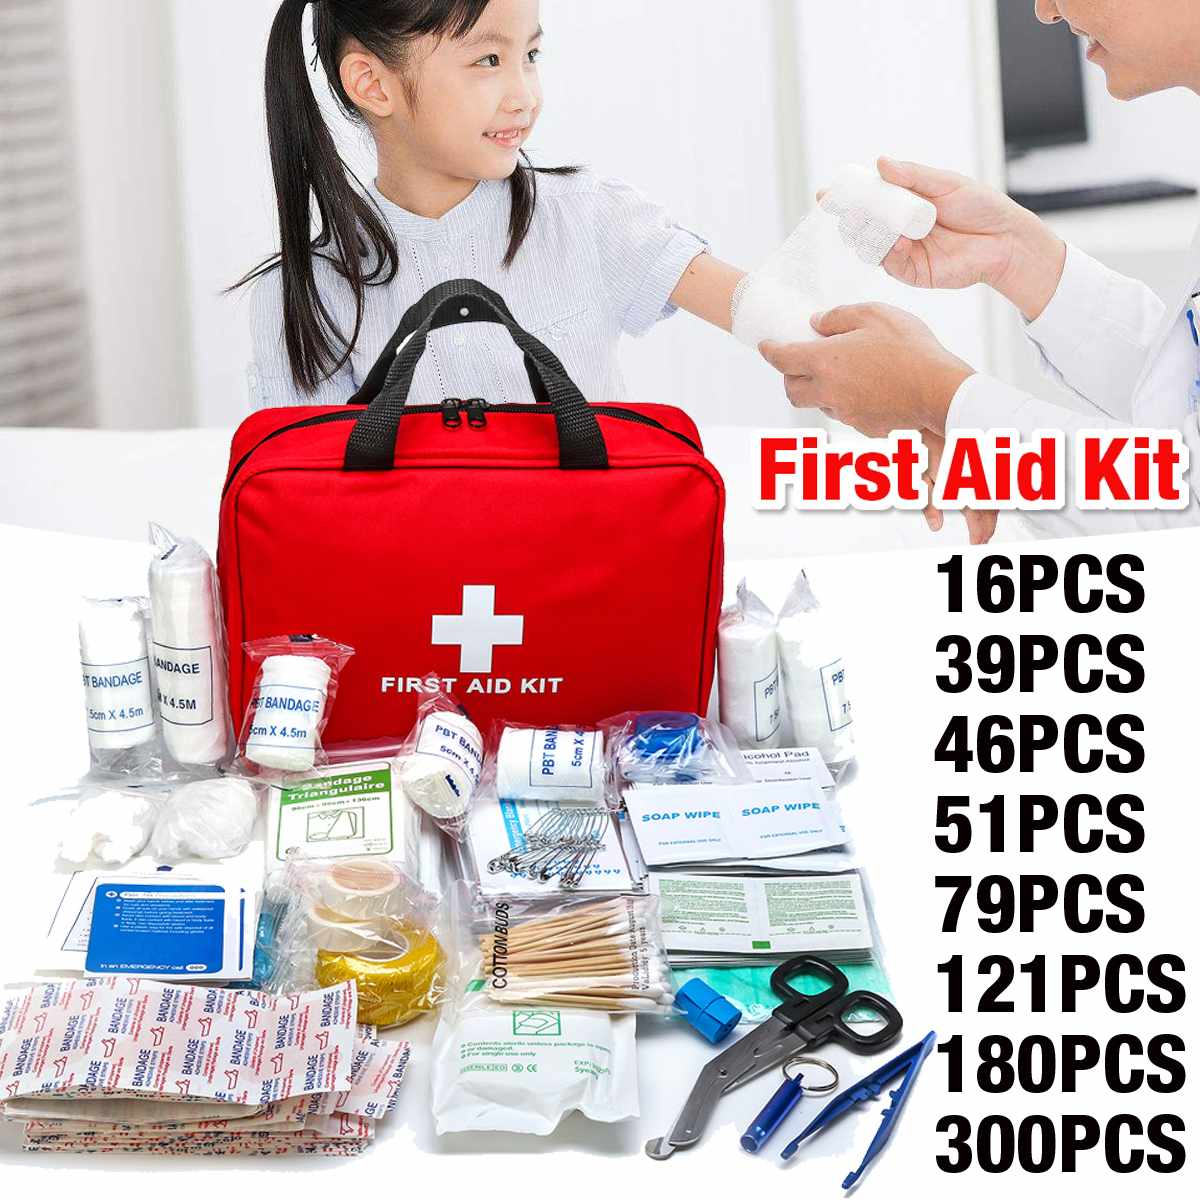 Ultimate SaleFirst-Aid-Kit Medicines Emergency-Survival-Set Hiking Outdoor Camping Portable for 16-300pcs